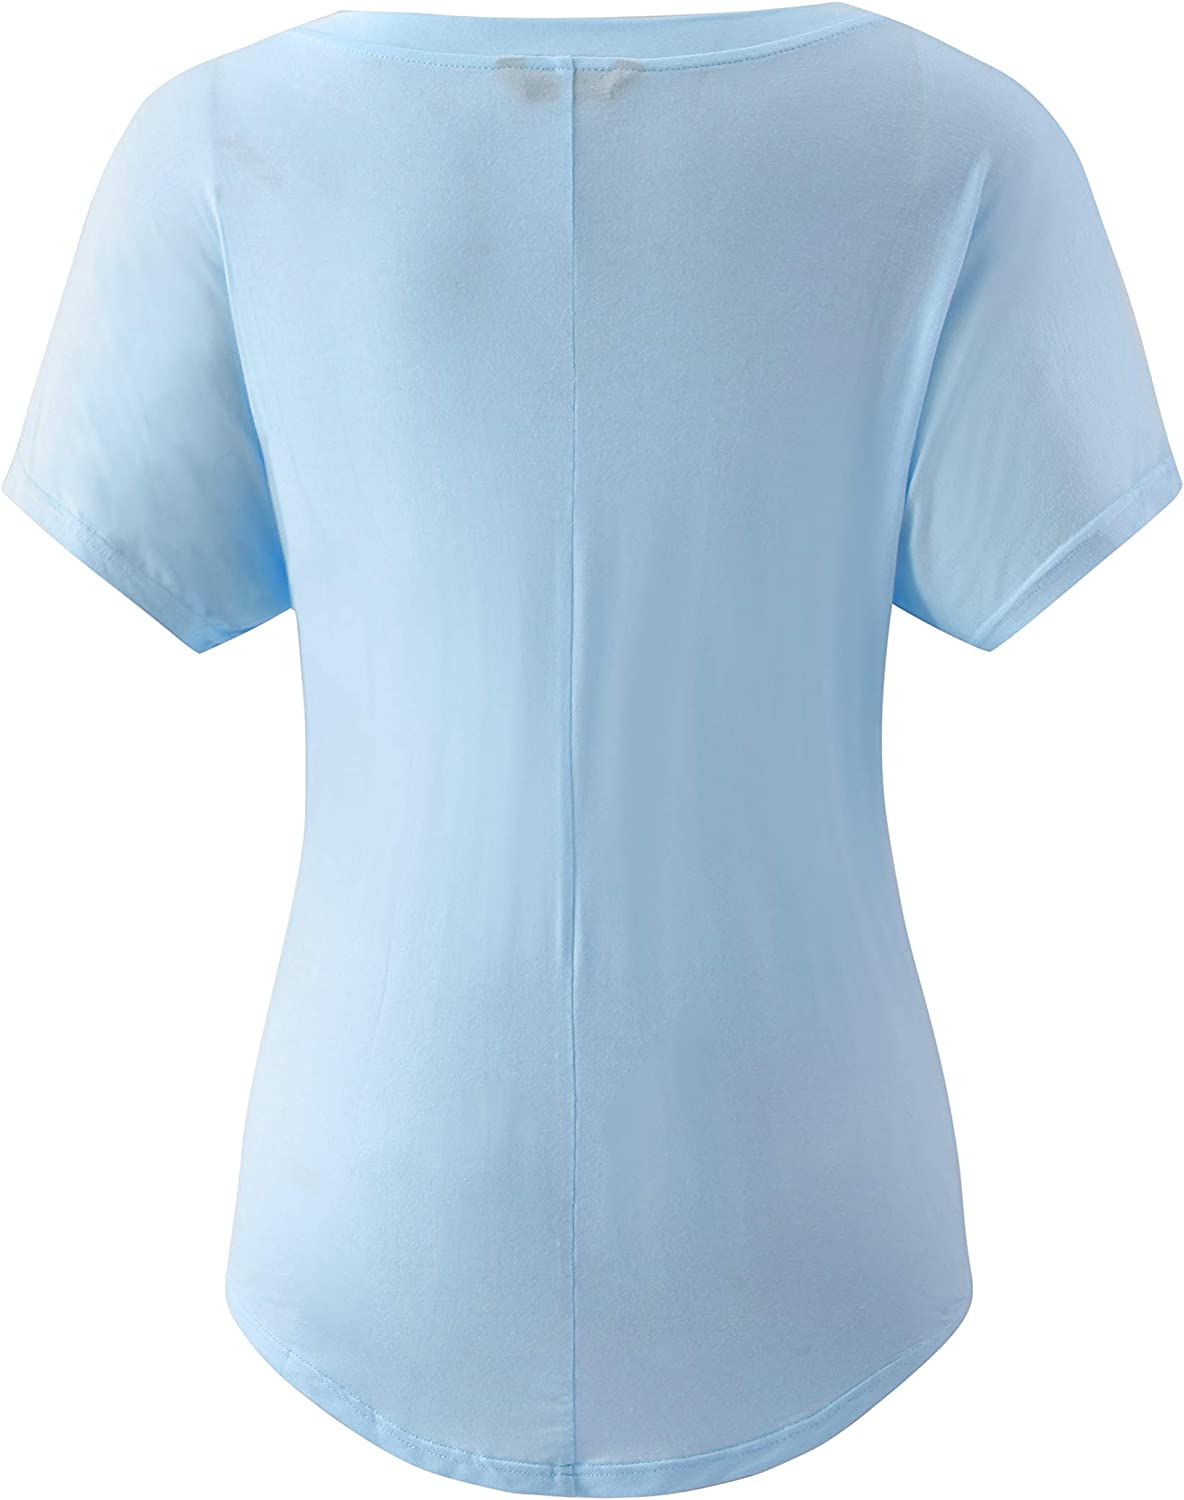 KLOTHO Casual V Neck Dolman Base Layer Shirt Loose Active Yoga Tops with Front Pockets for Women